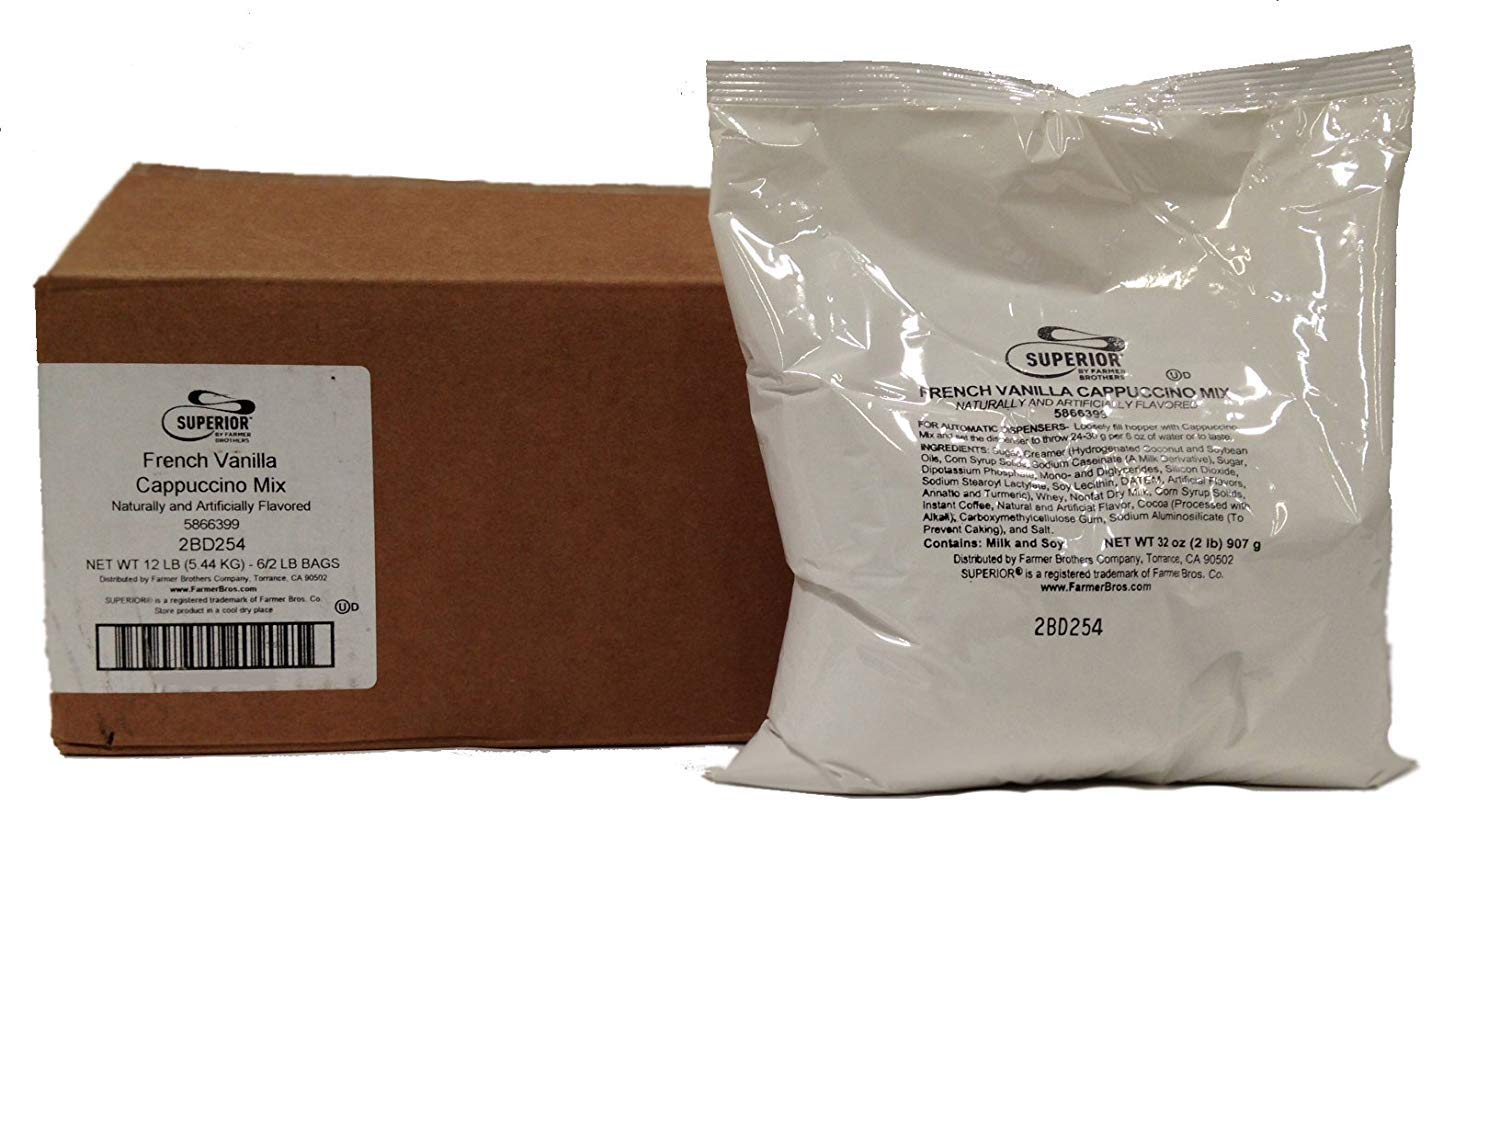 Superior French Vanilla Cappuccino Mix (6 bags/2 lbs each) by Superior